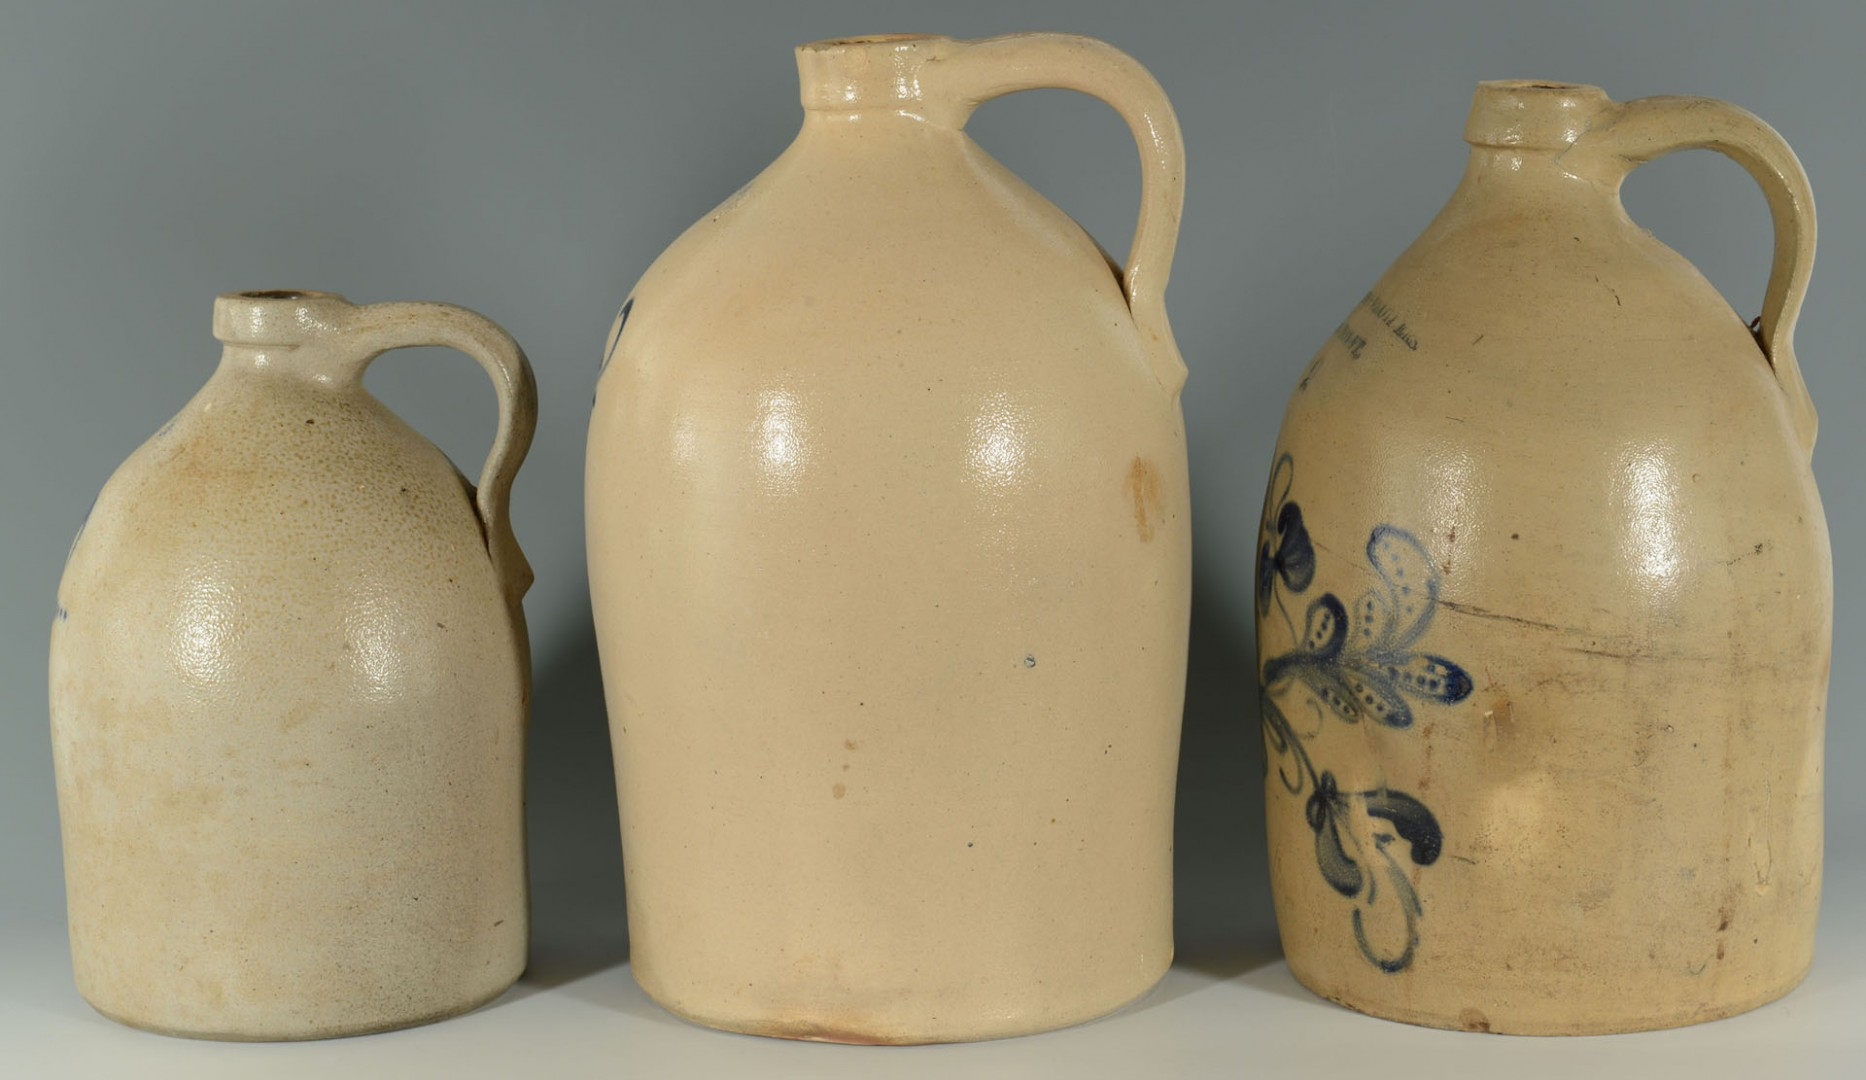 Lot 641: 3 Cobalt Dec. Stoneware Jugs, VT inc. Woodworth, B